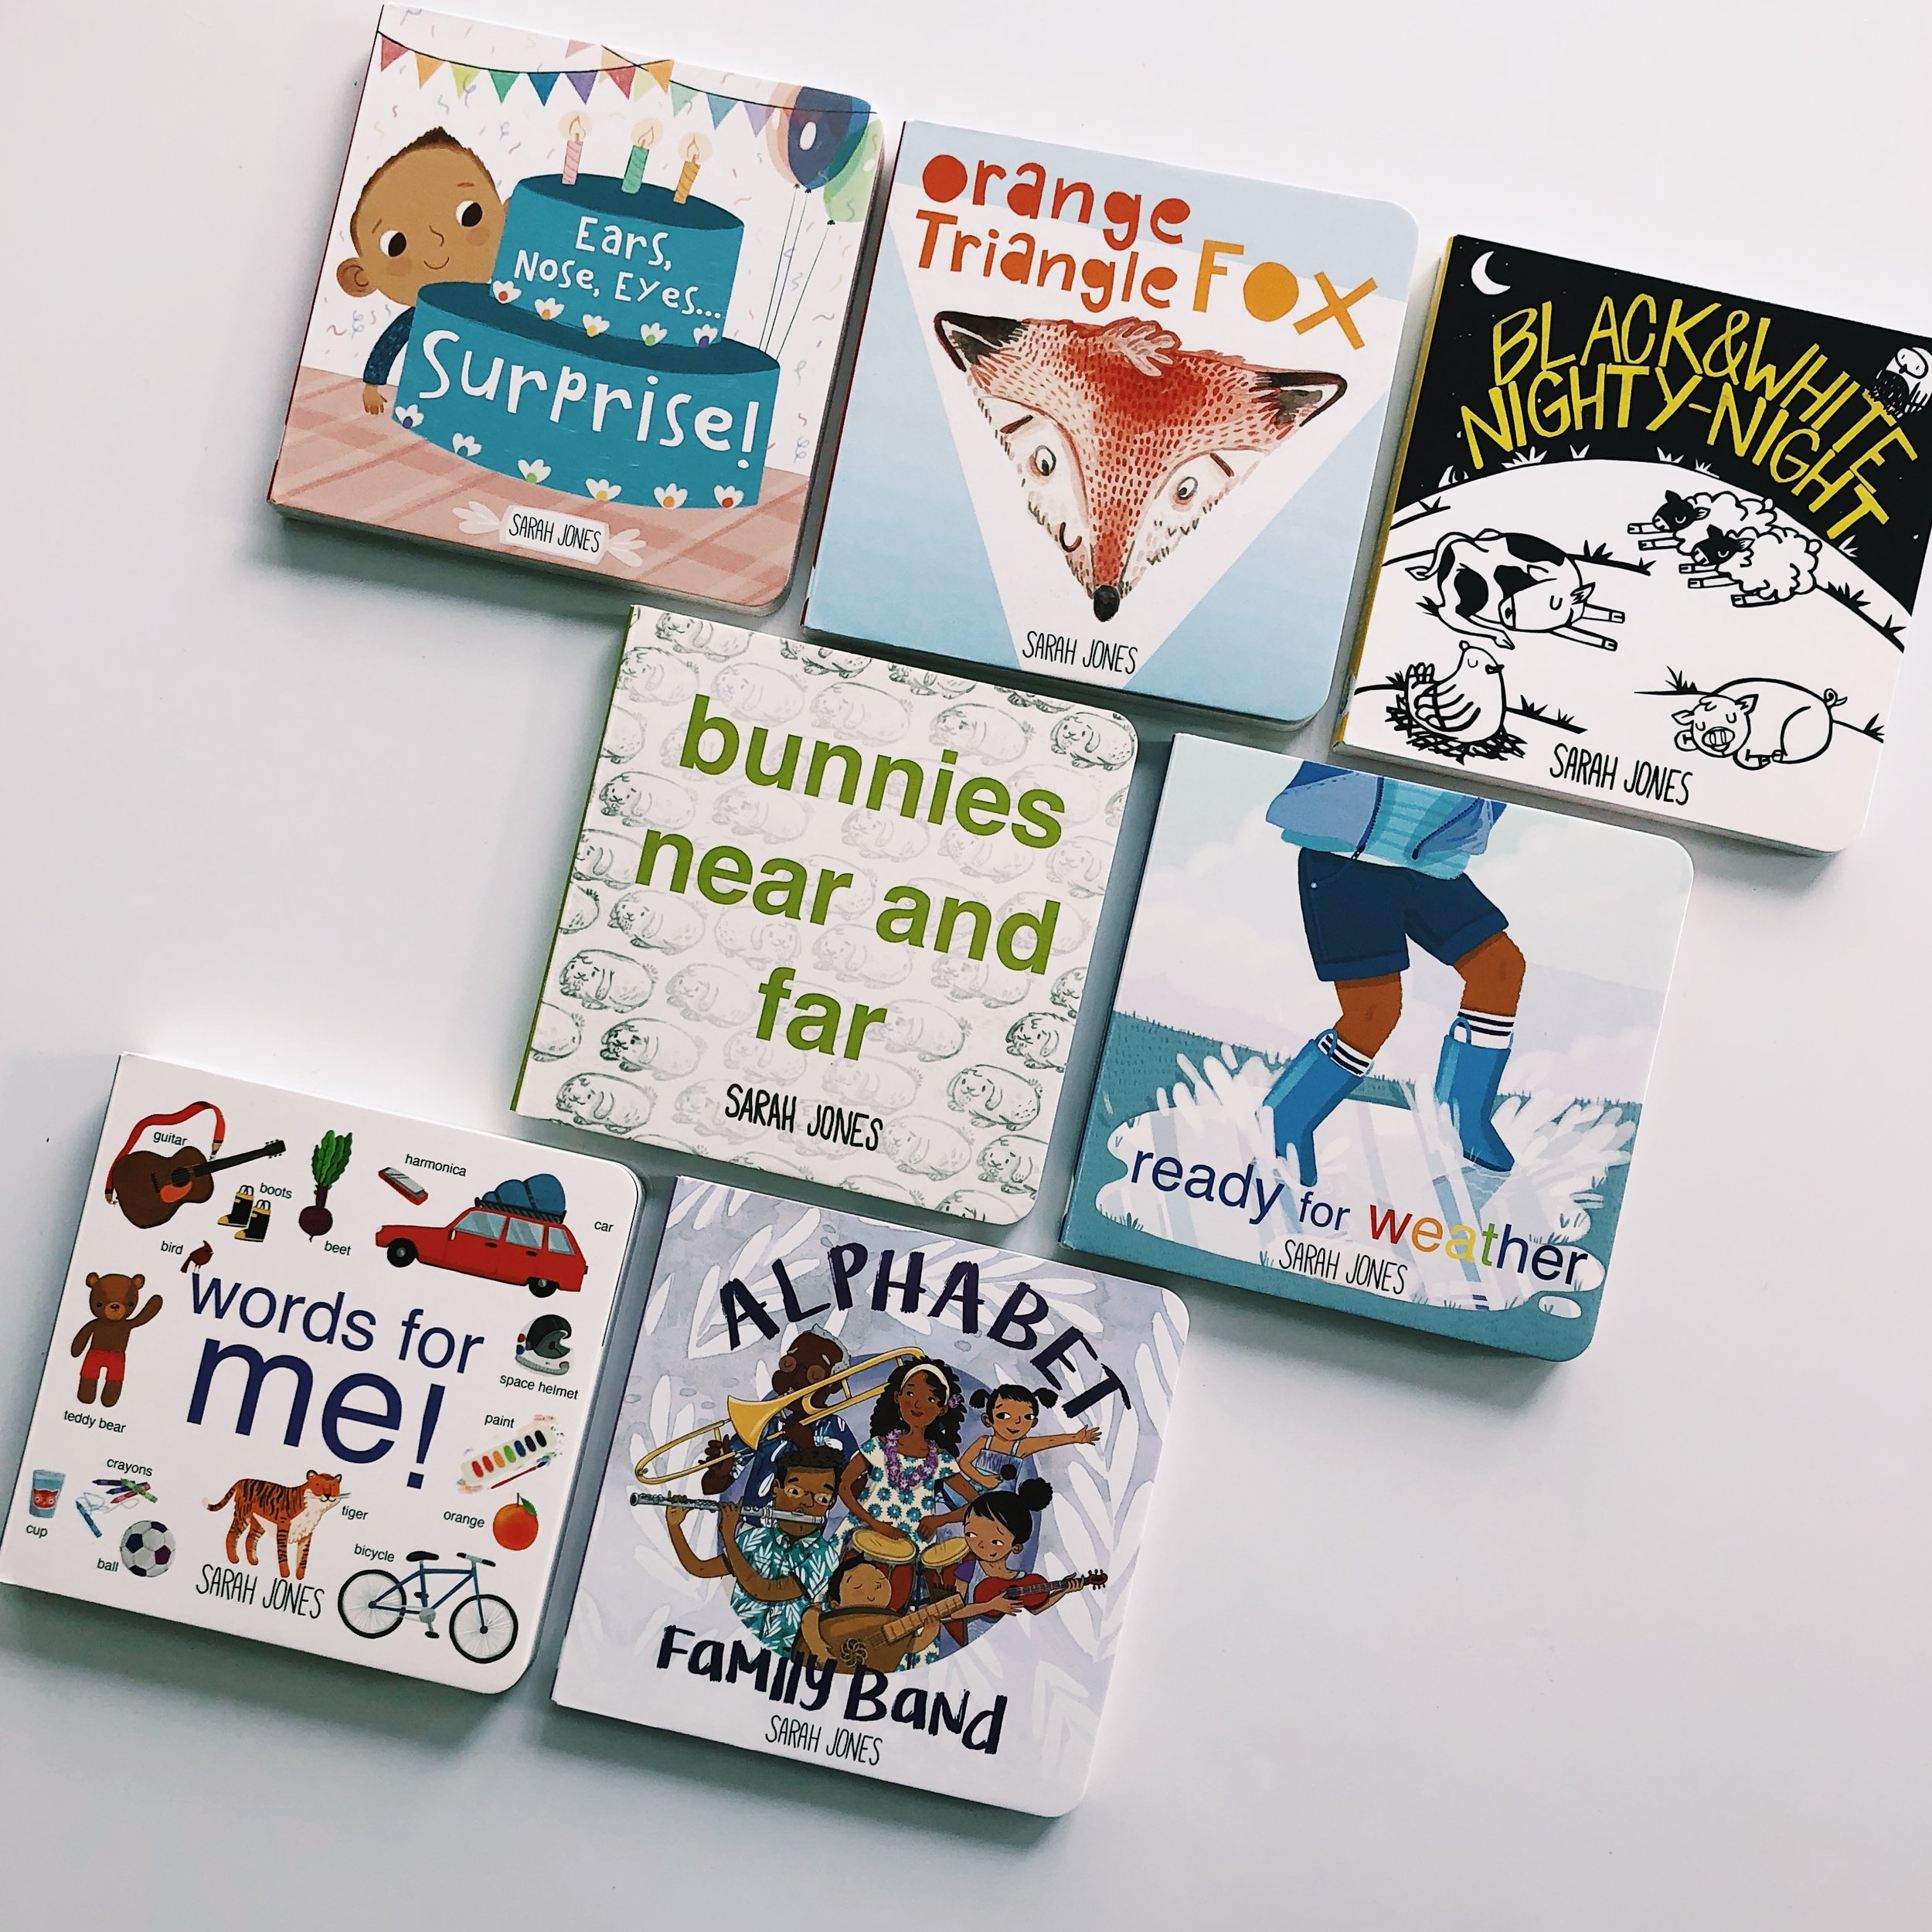 All seven books in the ROYGBaby series, written and illustrated by Sarah Jones